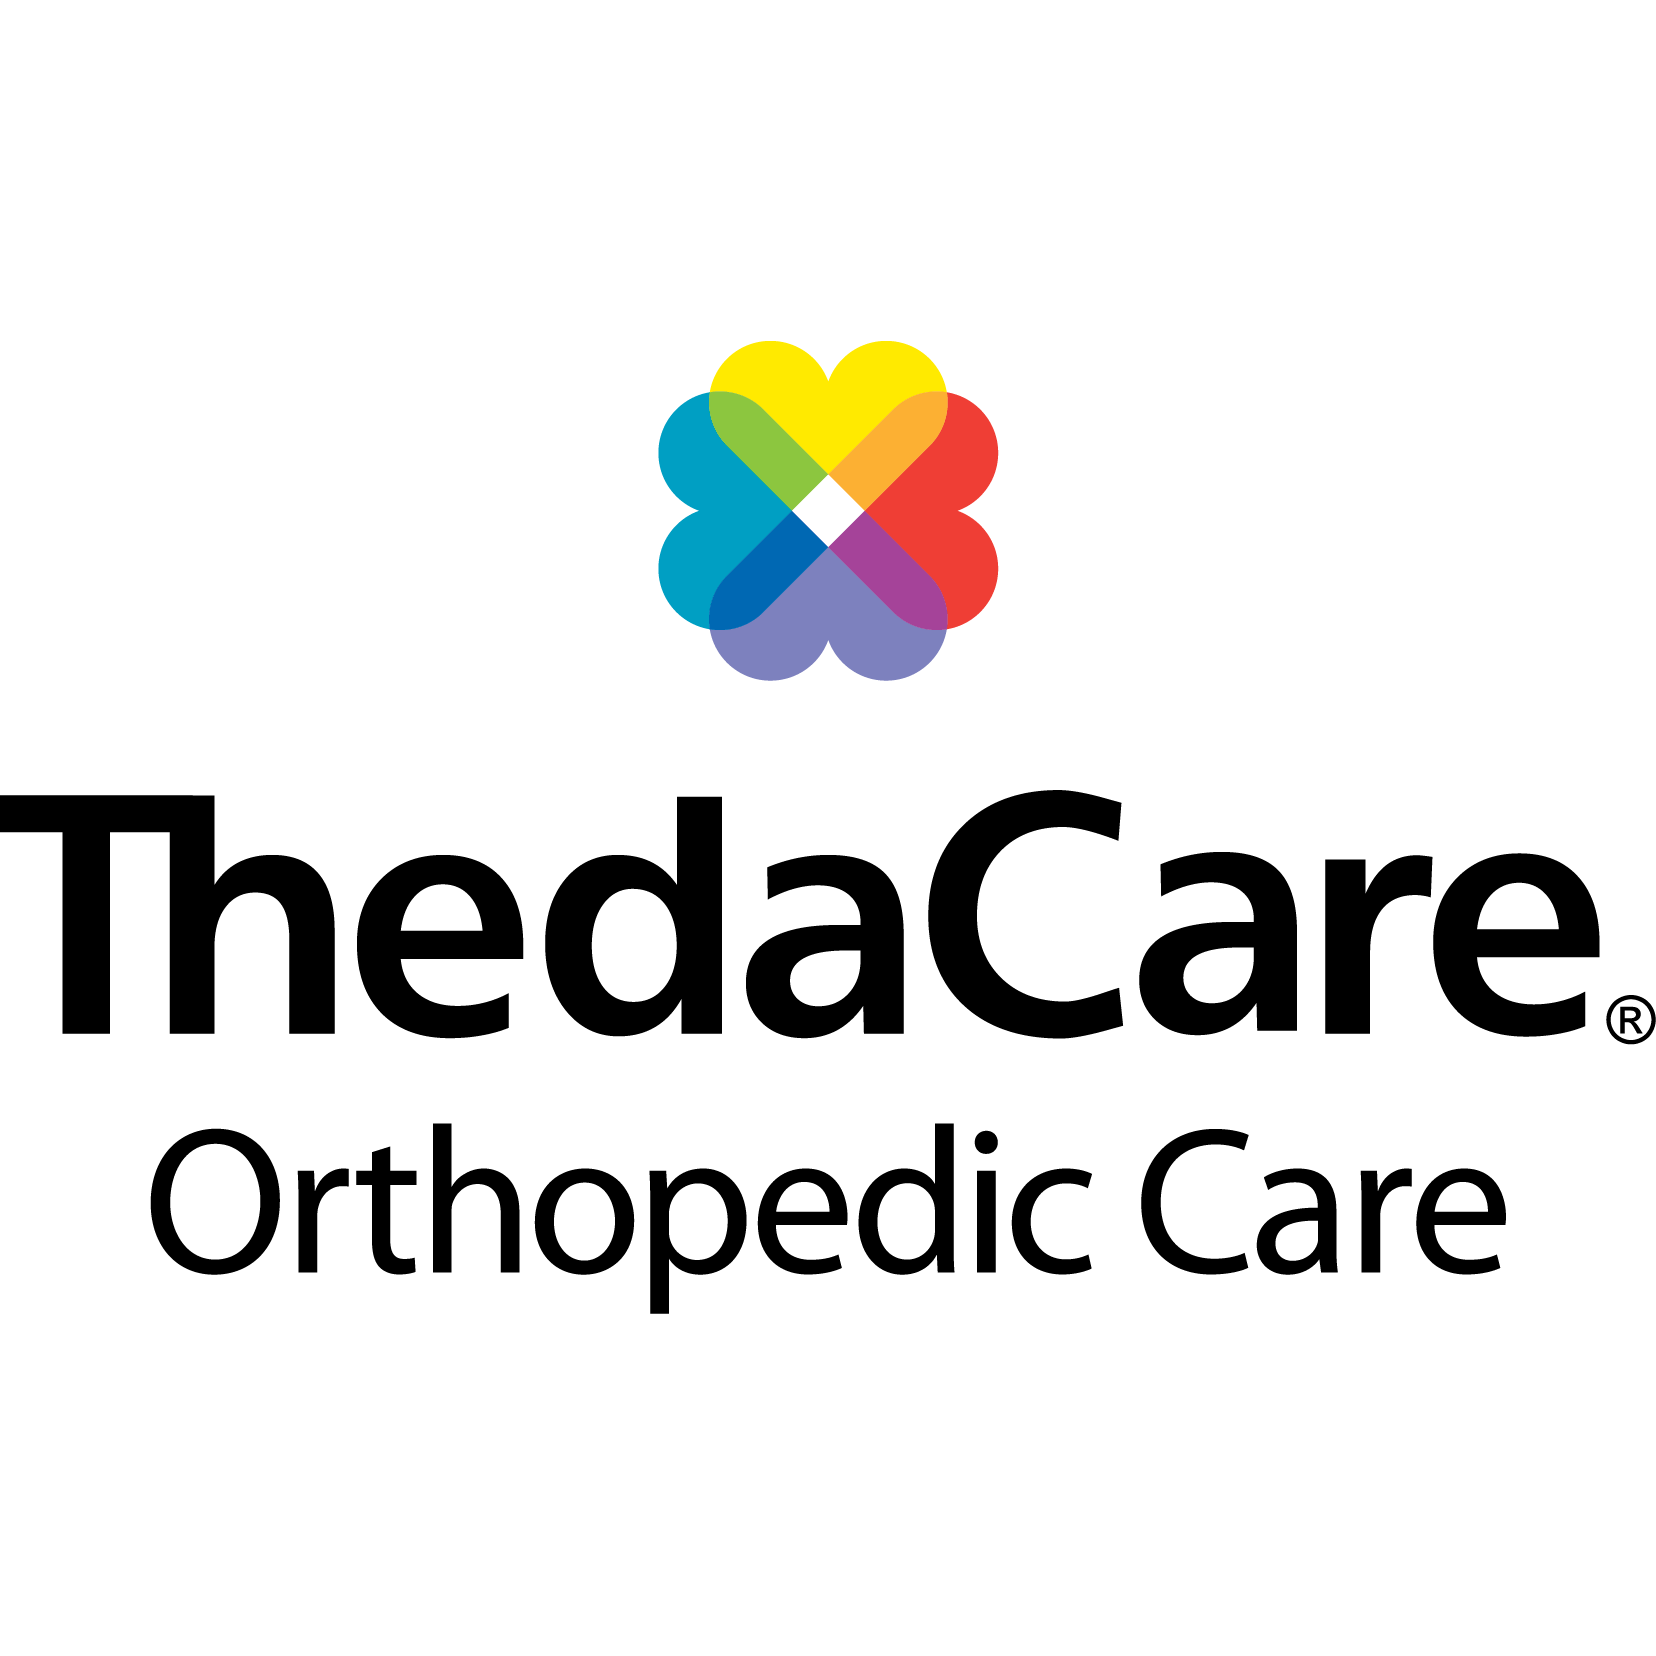 Physical Therapist in WI Shawano 54166 ThedaCare Orthopedic Care 100 County Road B  (920)831-5050